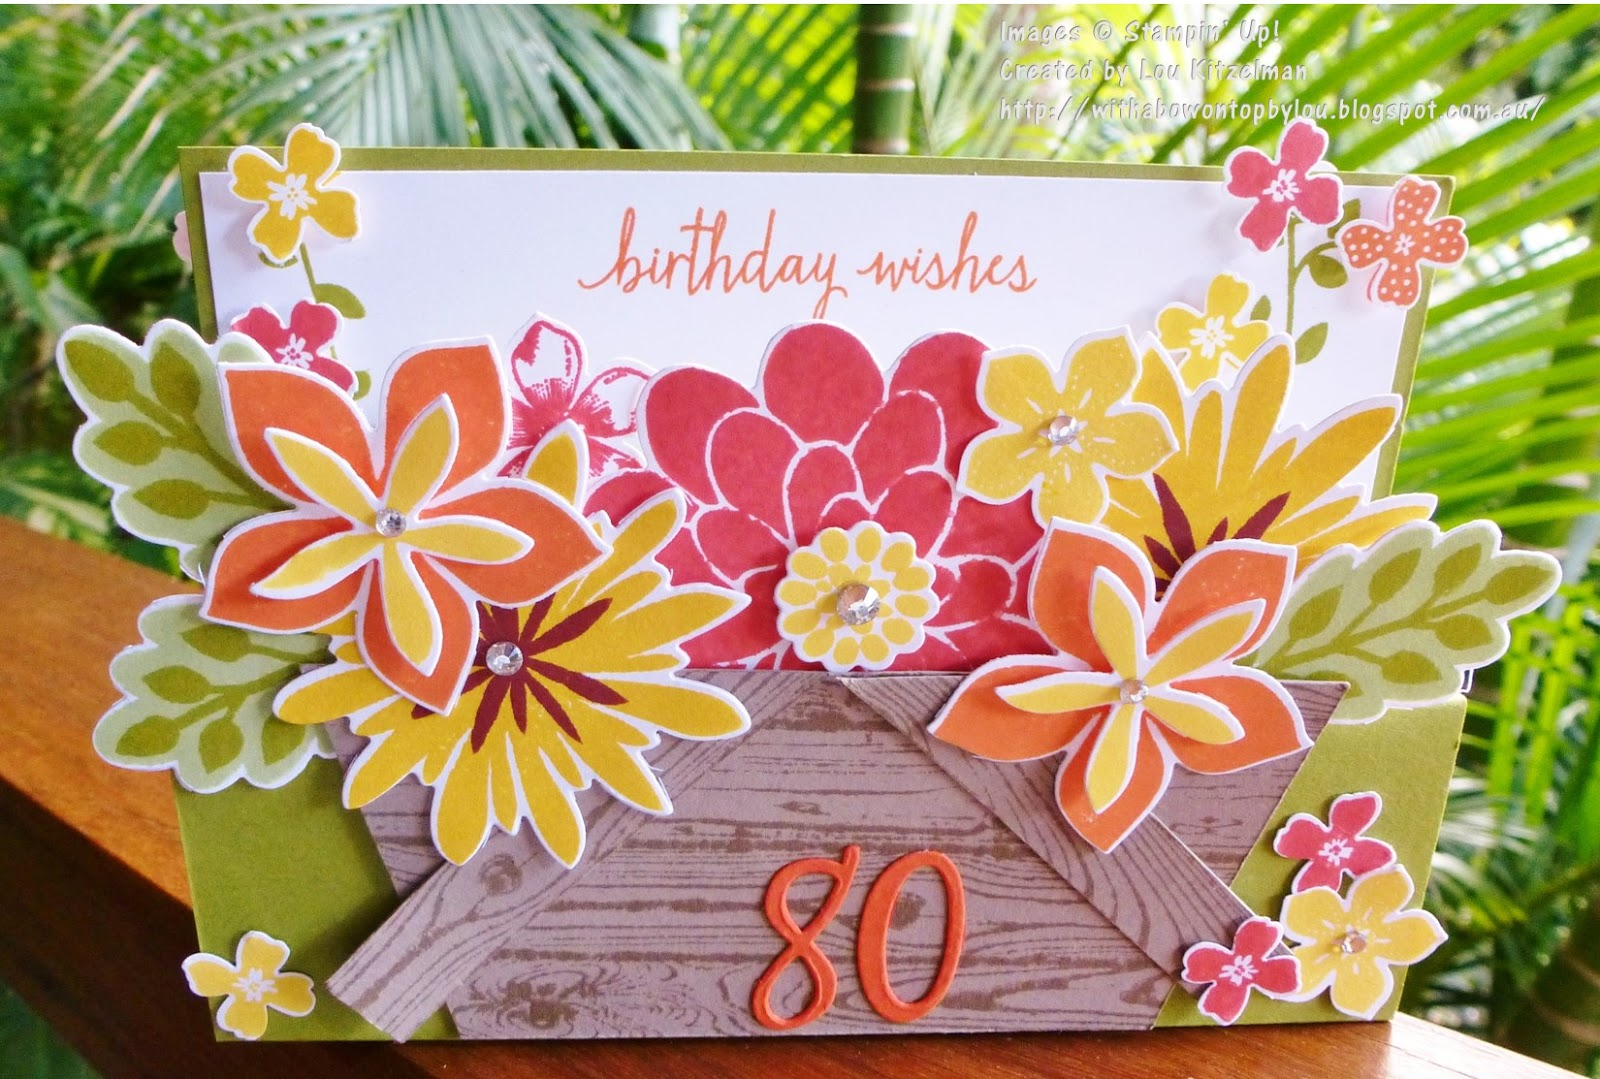 With A Bow On Top Flower Patch Pop Up Step Card